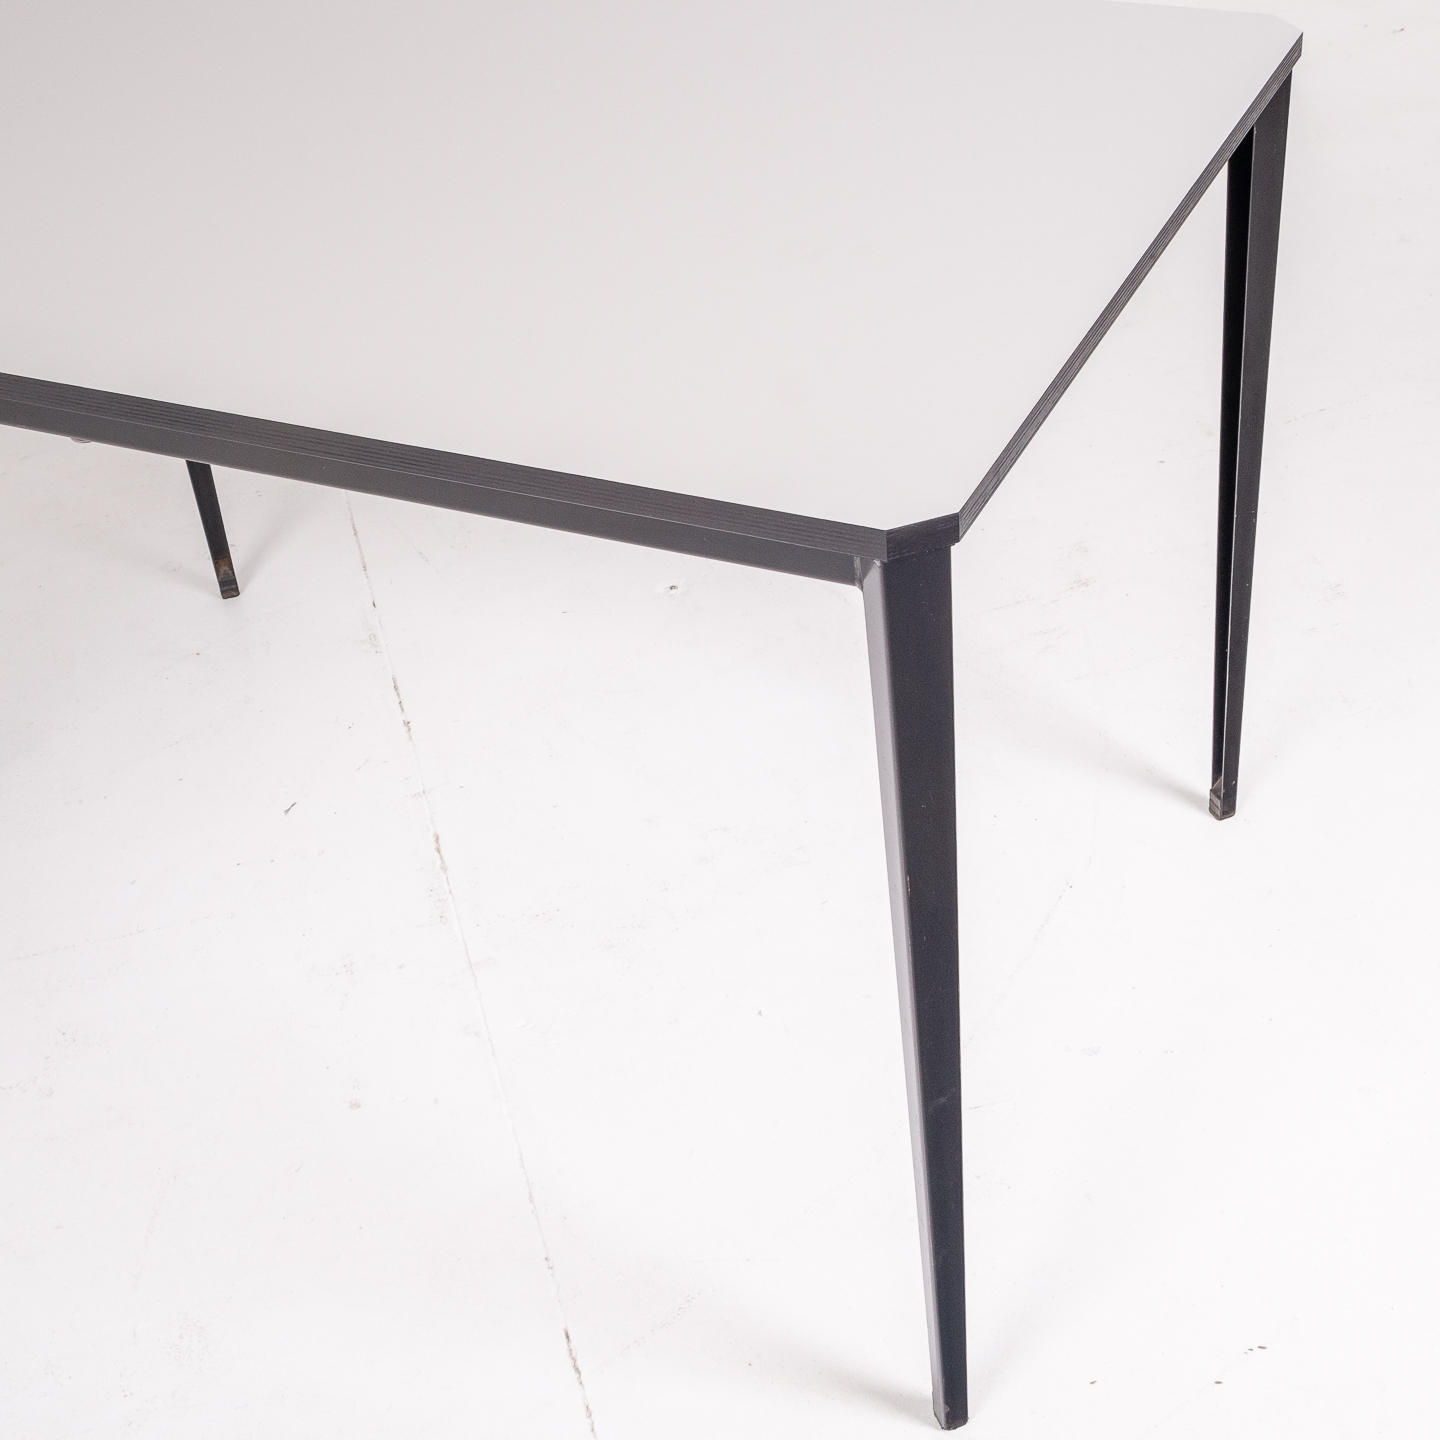 Recent Table By Wim Rietveld For Ahrend De Cirkel With Black Steel Base, 1960s, The Netherlands61